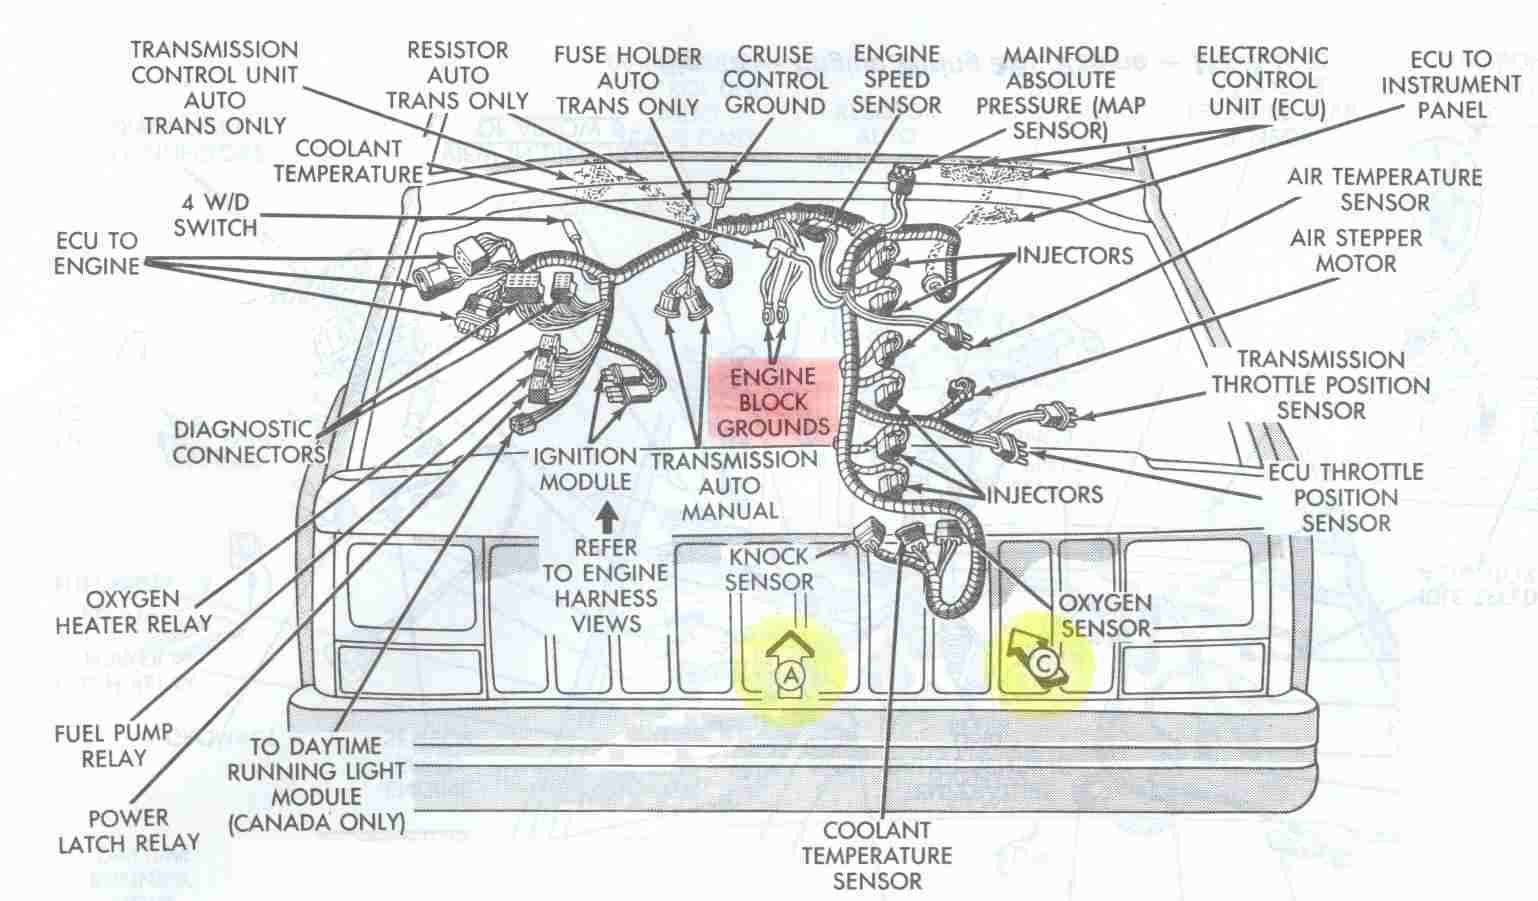 ab0134a7d9e021431187af597eb4aeca engine bay schematic showing major electrical ground points for 1999 jeep grand cherokee wiring harness at crackthecode.co